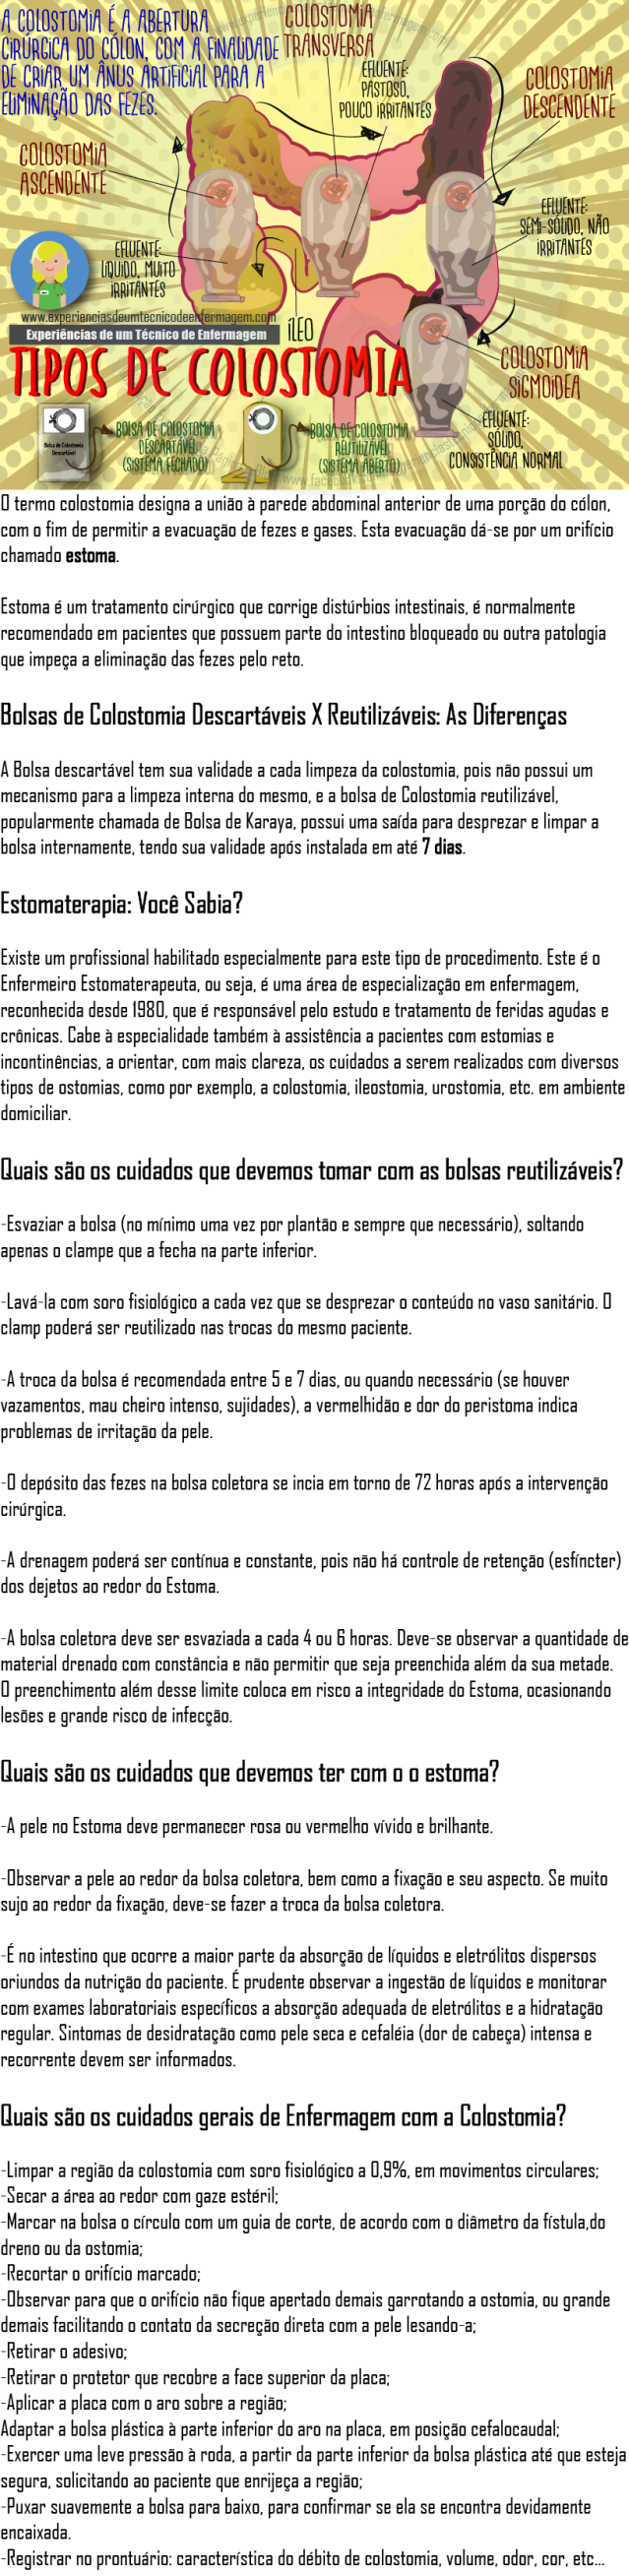 colostomia1texto.png